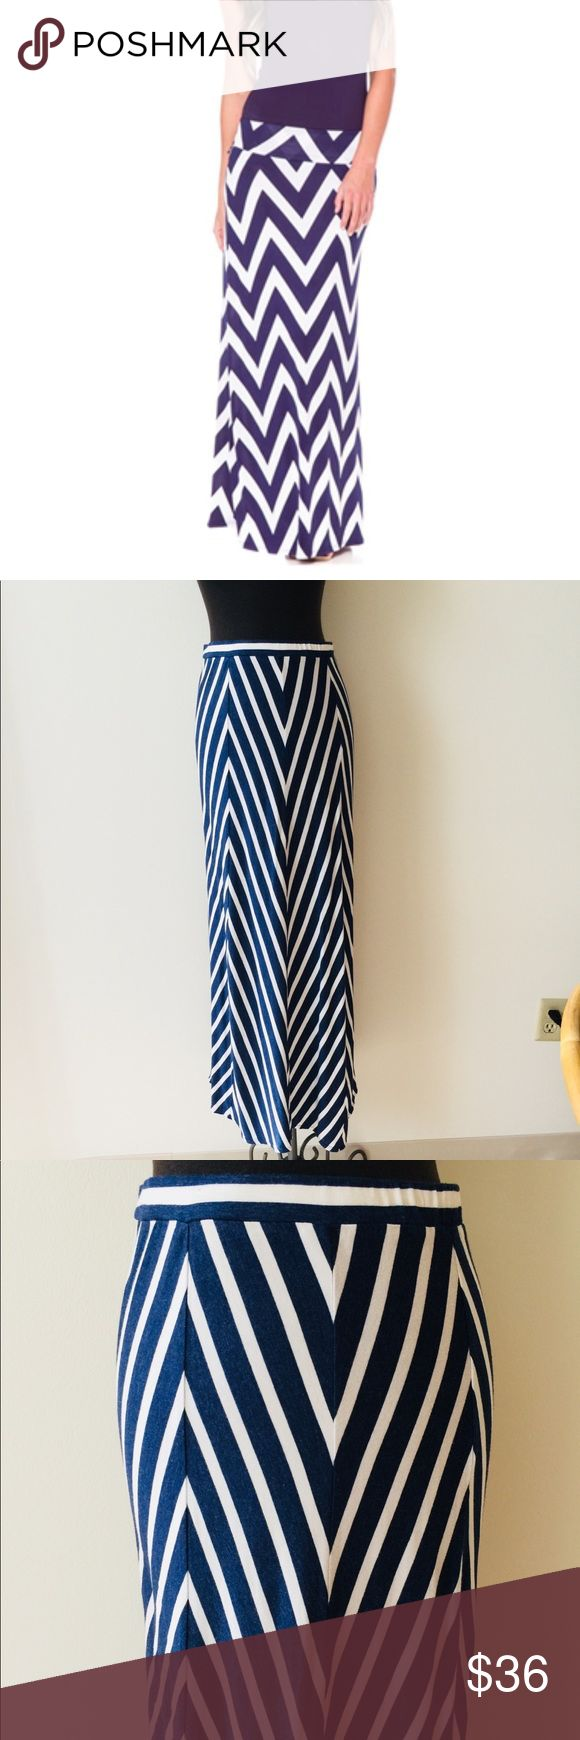 ❗️Max Studio Navy Chevron Maxi Skirt MSRP $78! ❗️Max Studio Navy Chevron maxi skirt in great condition retails $78. Size small. Cover photo to show styling. Buy this item at list price & get any 2nd item of equal or lesser value FREE! OR feel free to make an offer! I'm selling to the first reasonable offer I receive! Huge Clearout Sale for the holidays! Max Studio Skirts Maxi